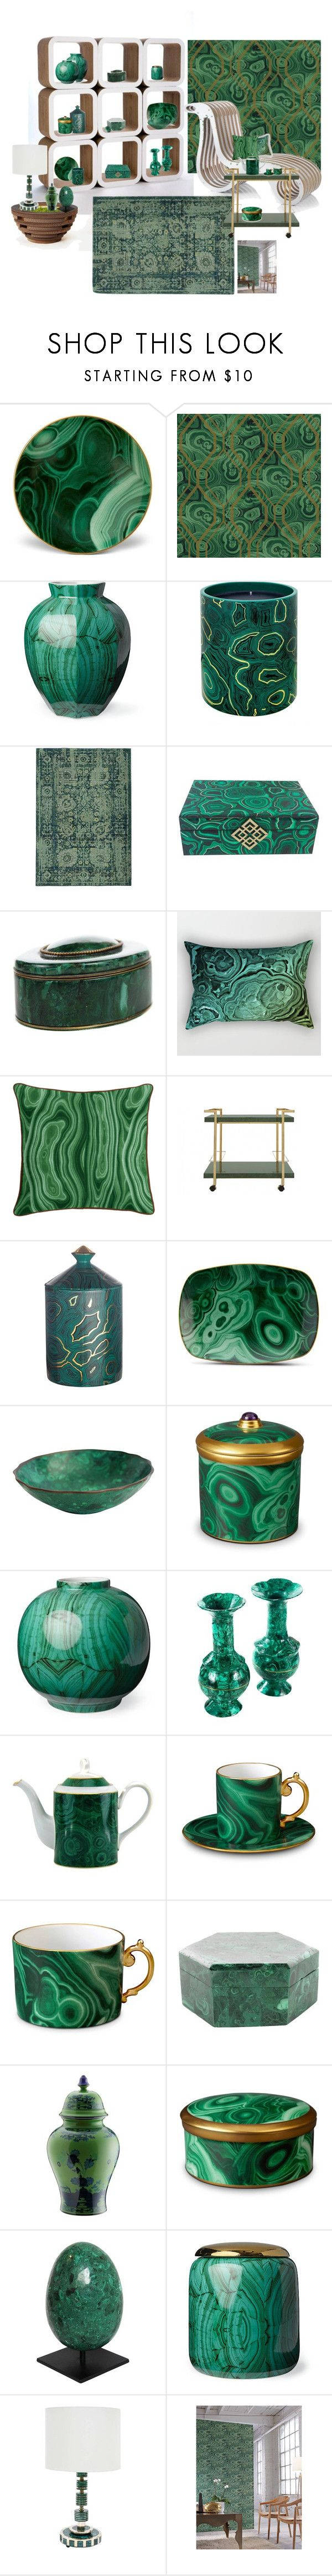 """Collection of malachite objects"" by lizzylima ❤ liked on Polyvore featuring interior, interiors, interior design, home, home decor, interior decorating, L'Objet, Frontgate, Fornasetti and Pantone Universe"